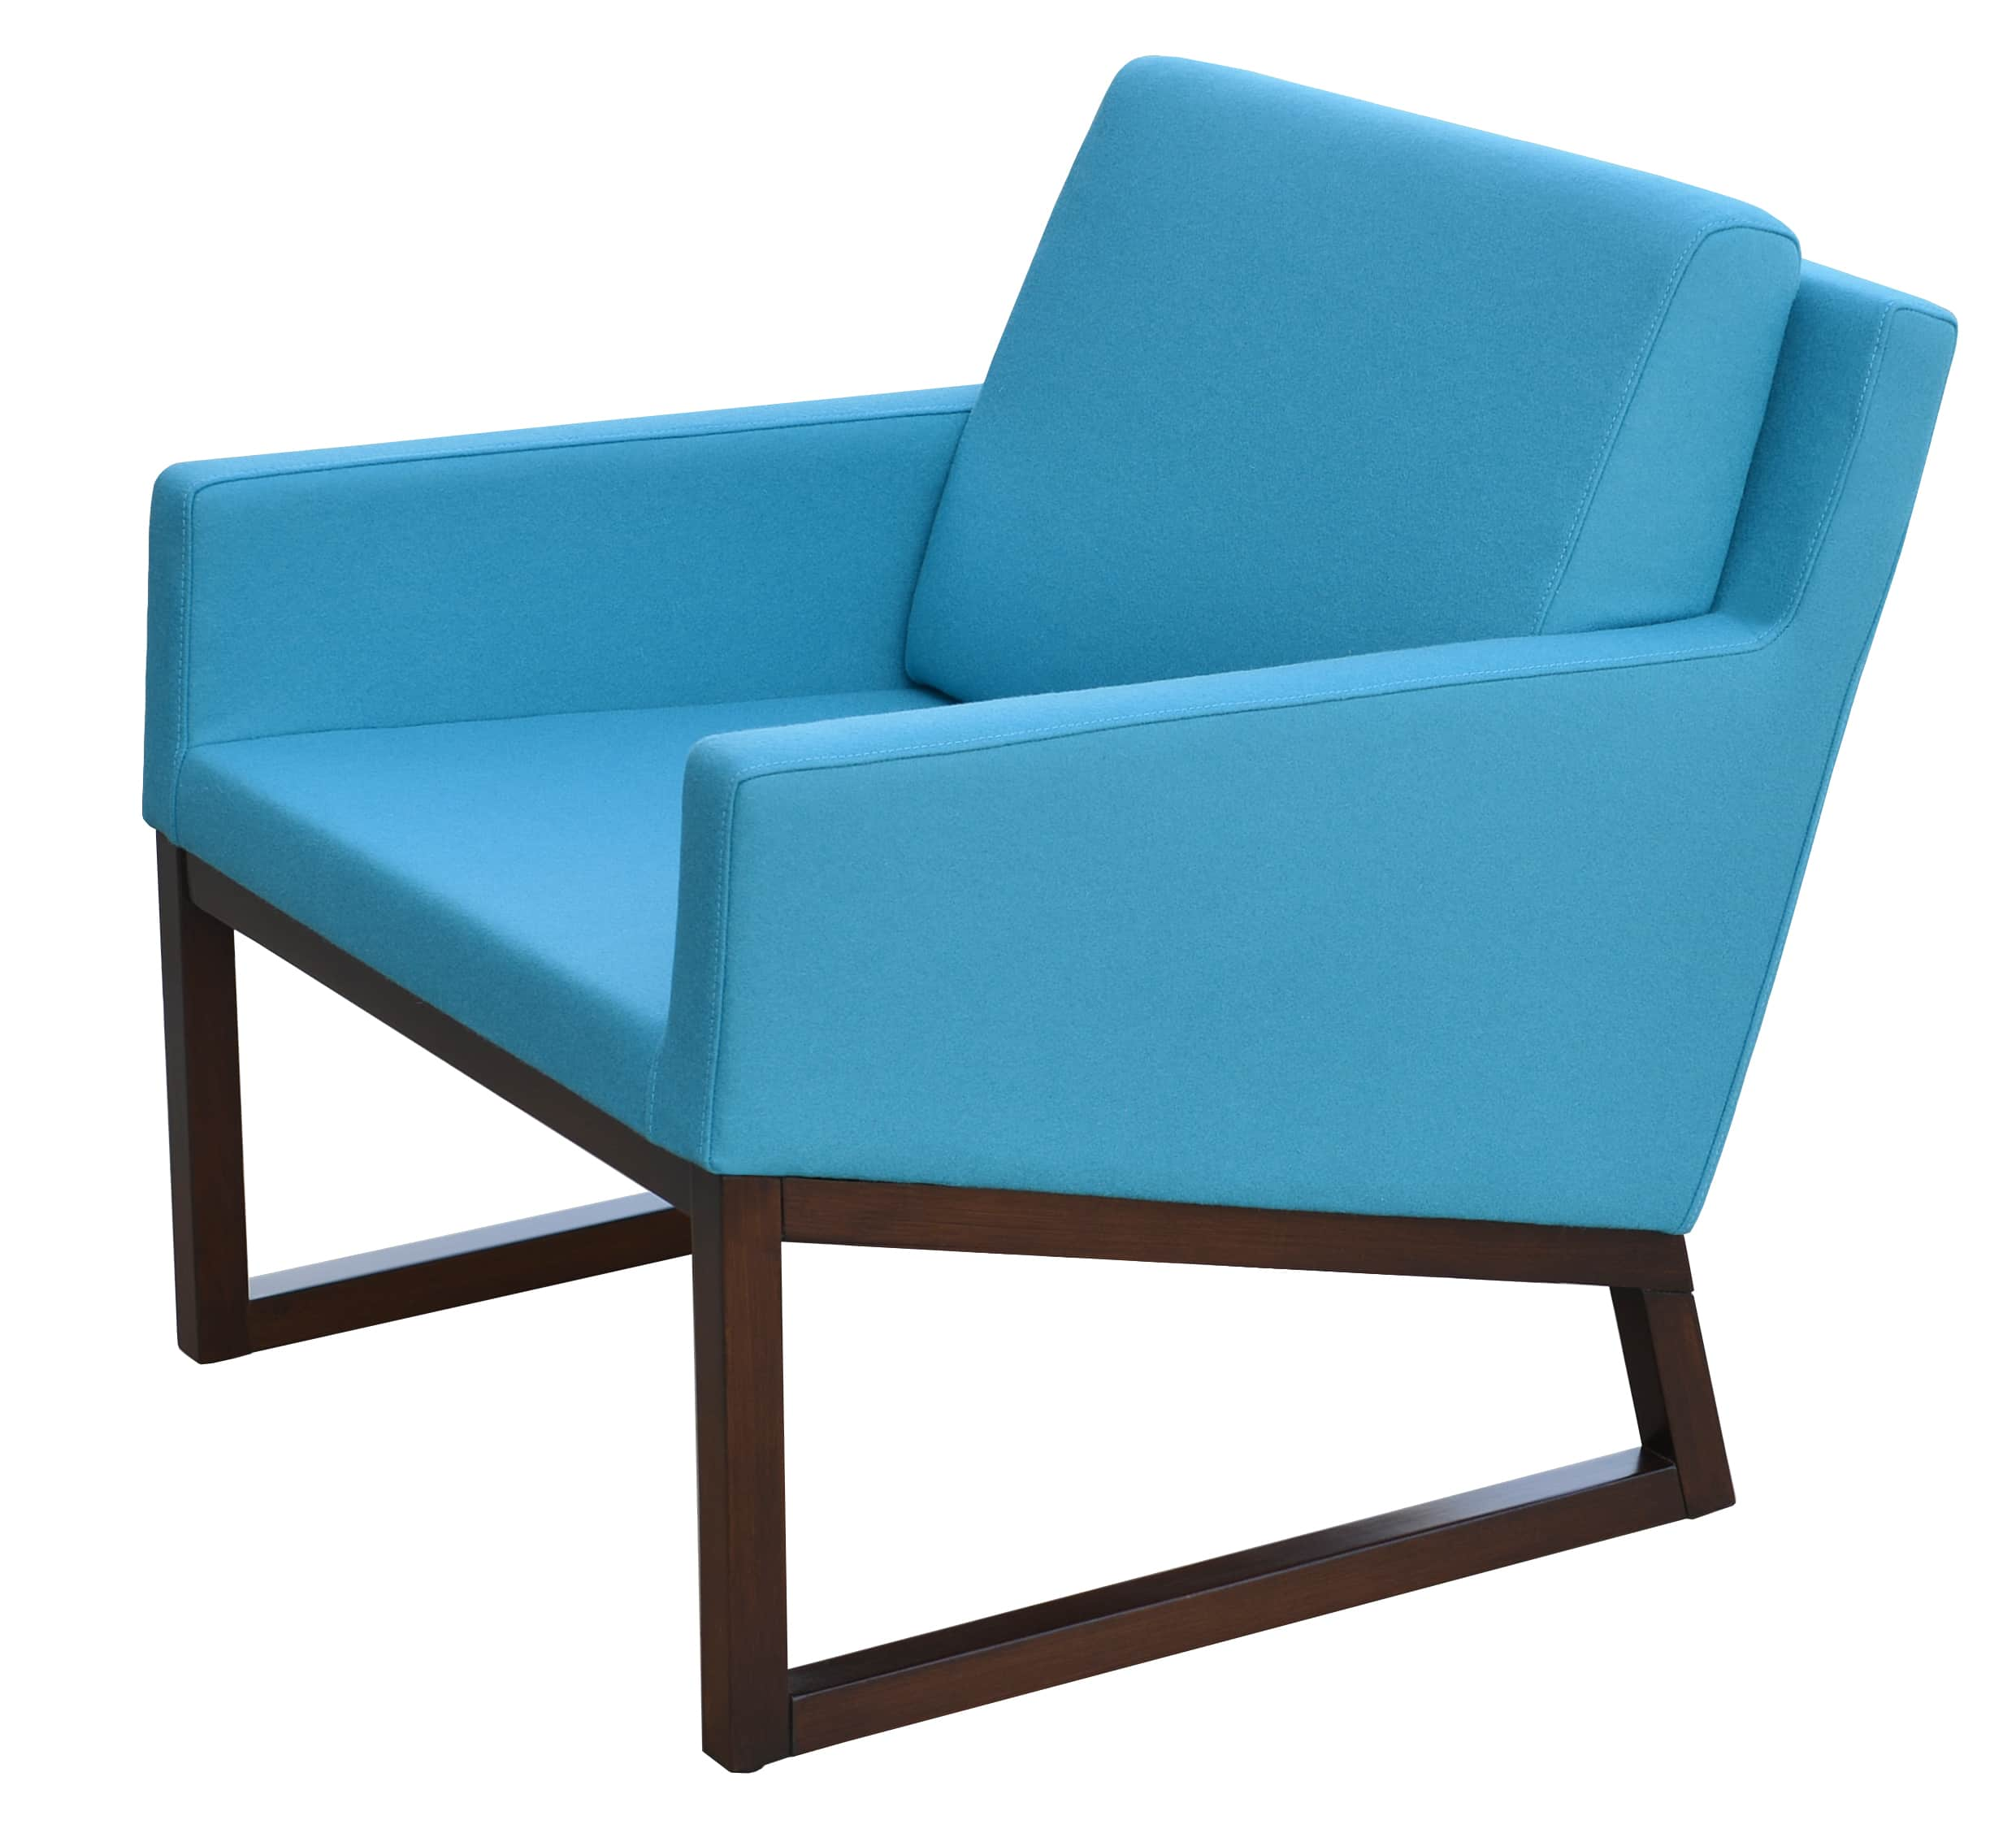 Nova Wood Camira Wool Turquoise copy